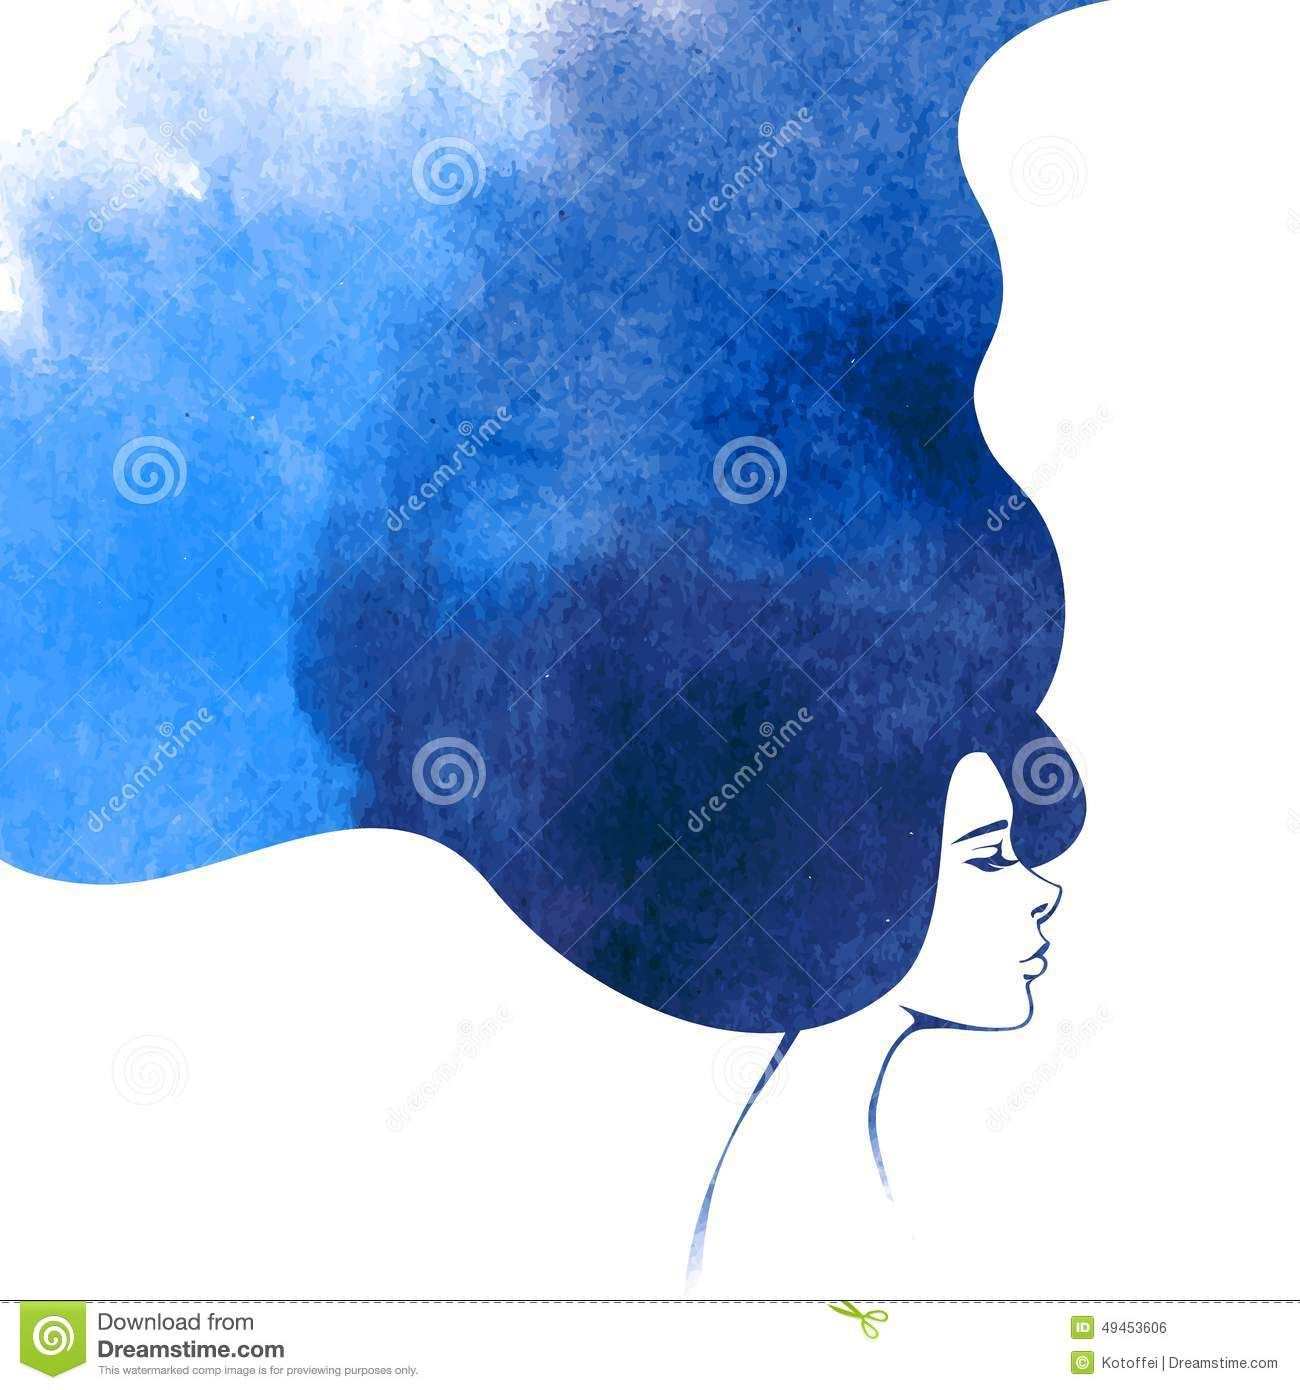 Image Result For Watercolor Art Of Hair Turning Into Clouds